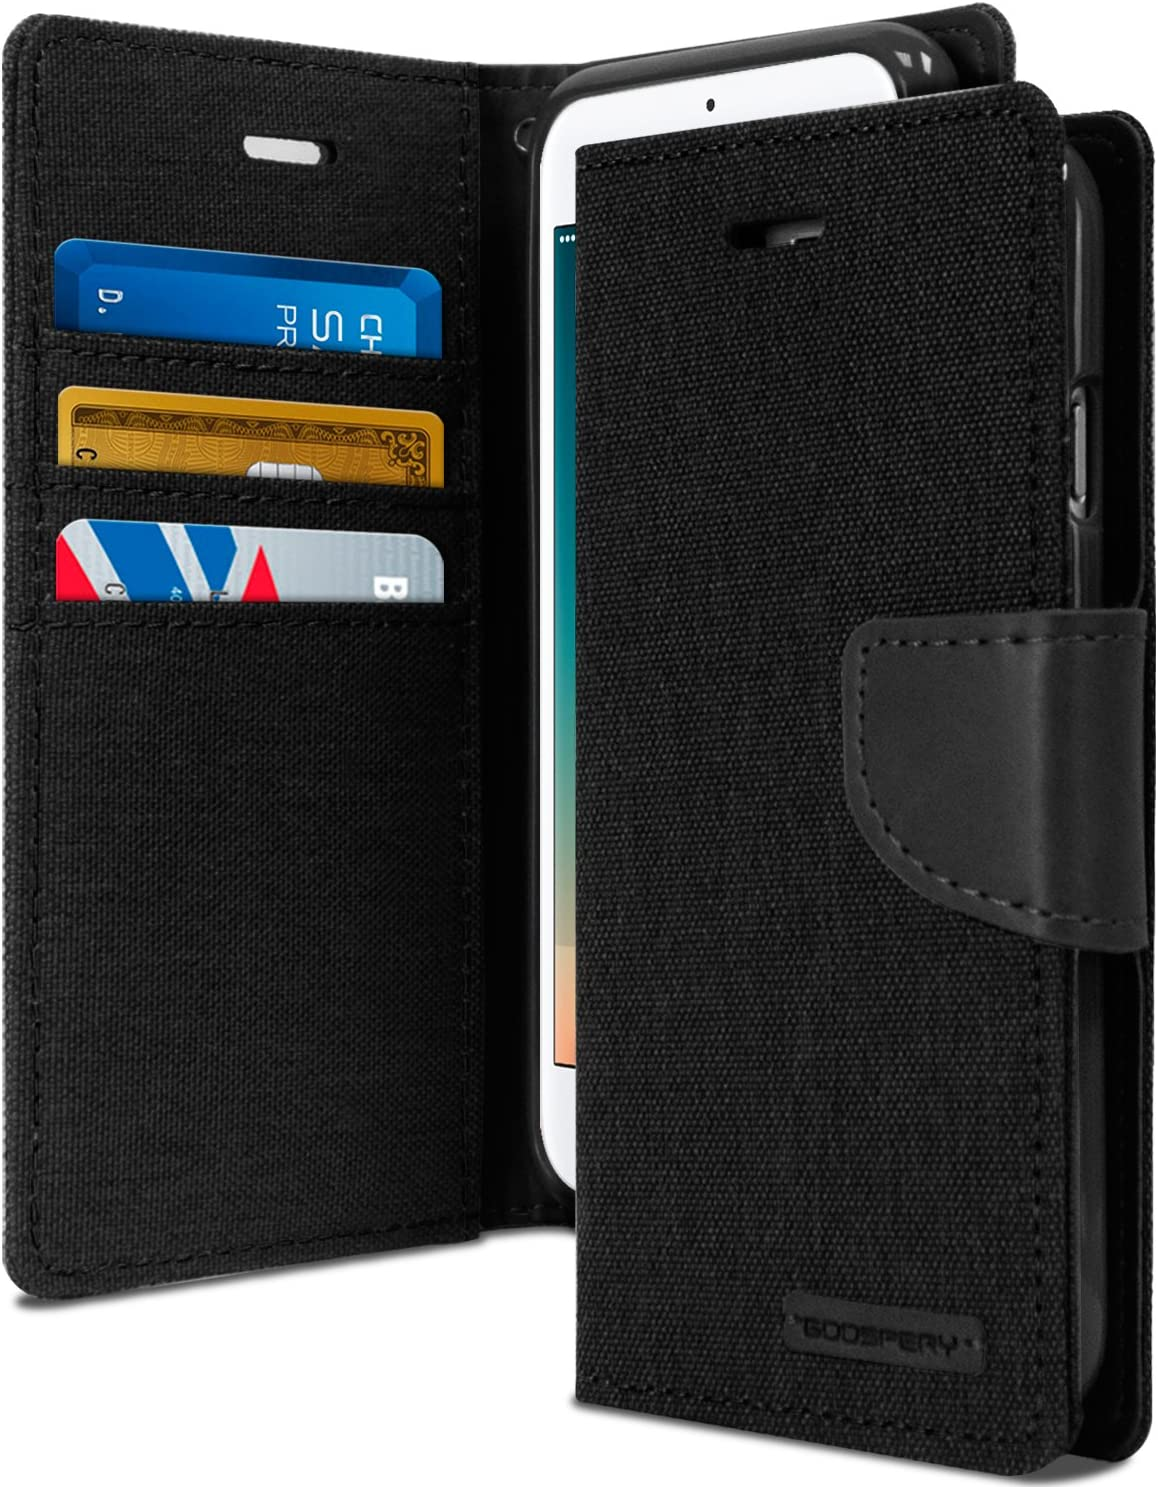 Goospery Canvas Wallet for Apple iPhone SE 2020 Case, iPhone 8 Case, iPhone 7 Case, Denim Stand Flip Cover (Black) IP7-CAN-BLK